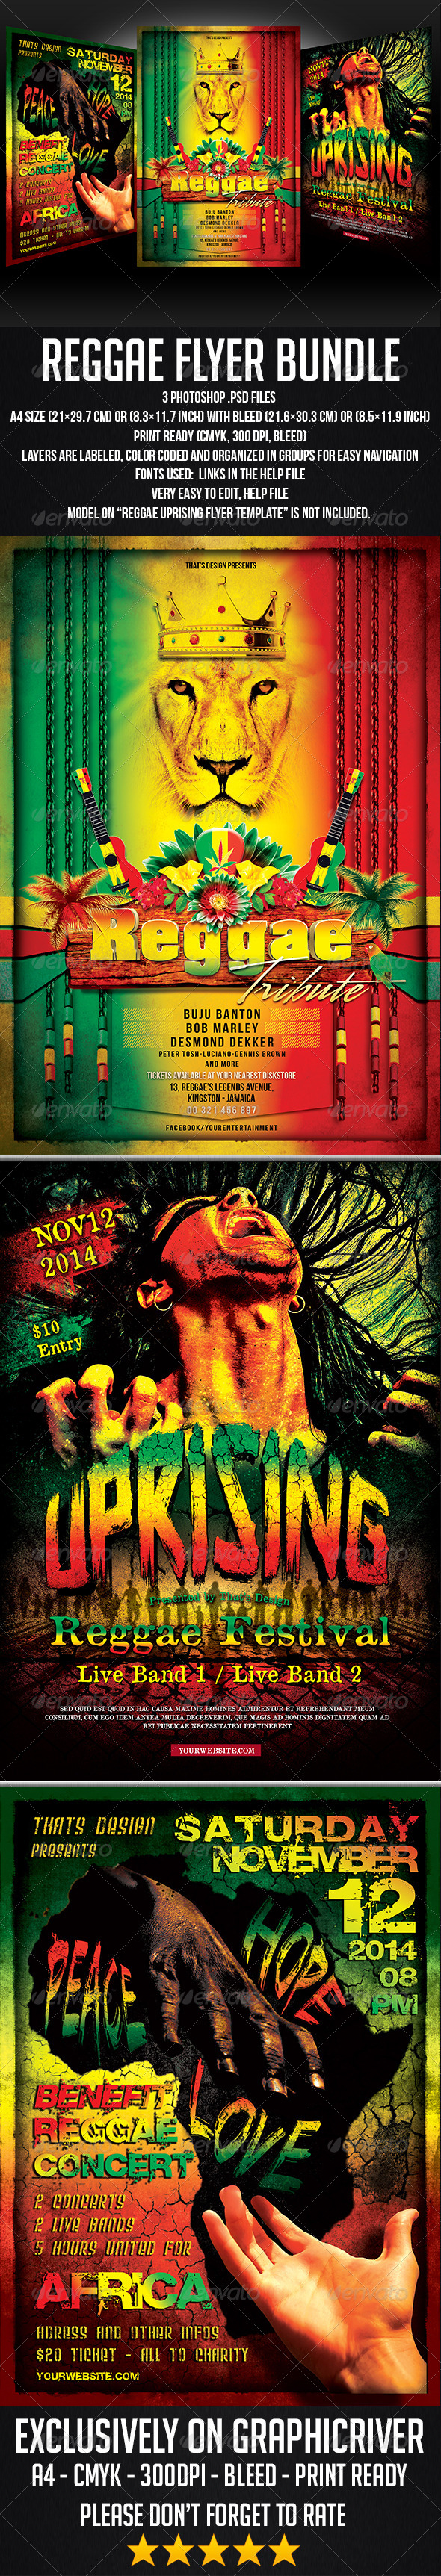 GraphicRiver Reggae Flyer Bundle 7710186